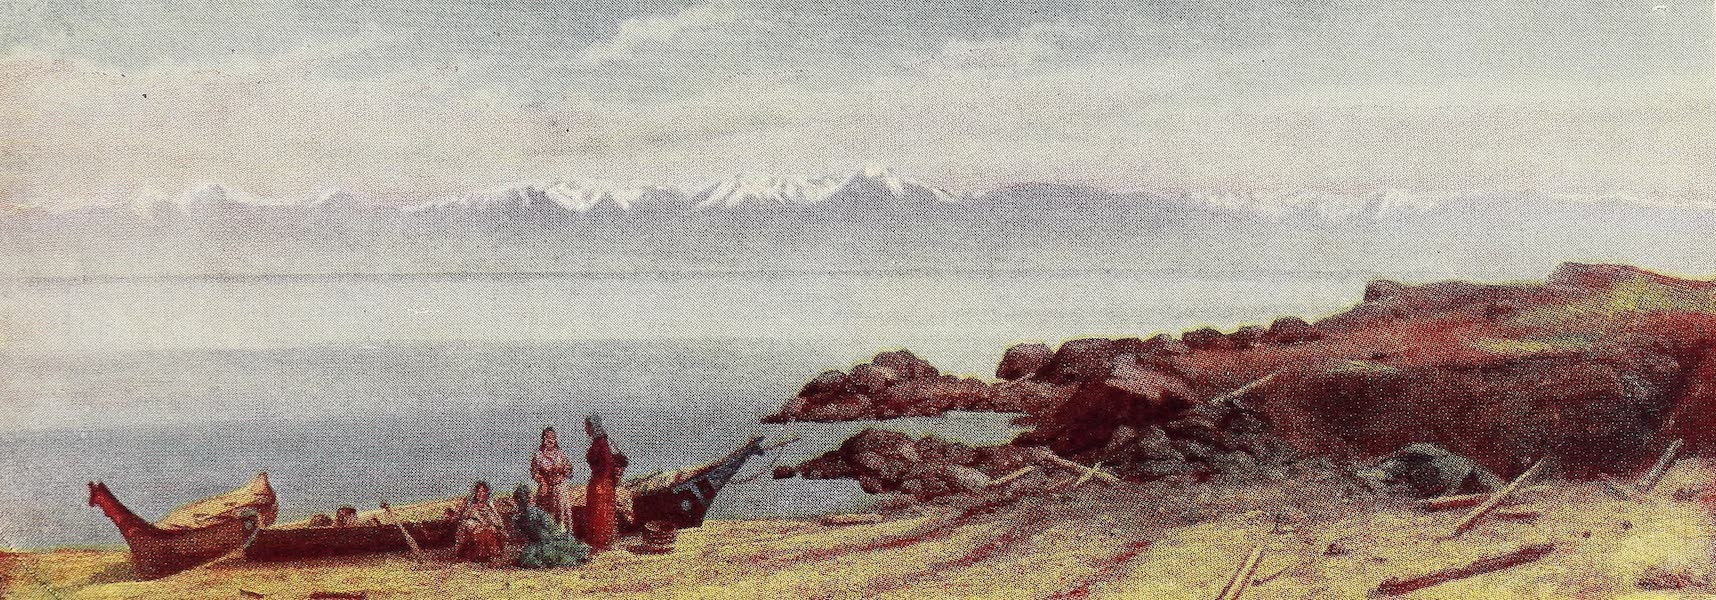 Canada, Painted and Described - Olympic Mountains, from Coast near Victoria (1907)